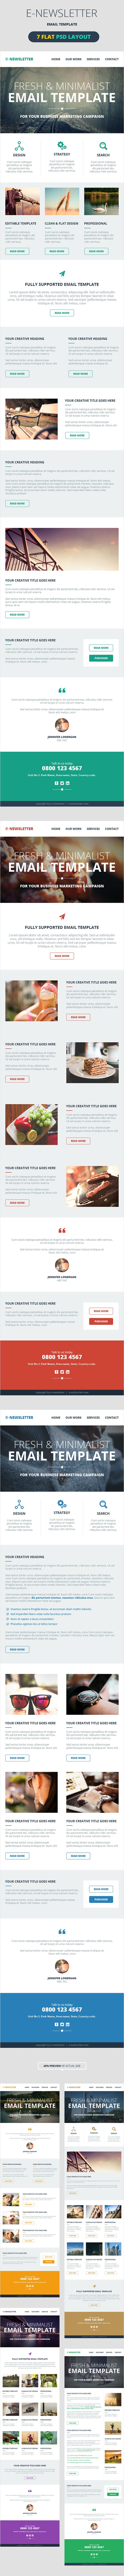 Delighted 1.5 Button Template Big 10 Tips For Writing A Resume Rectangular 100 Free Resume Builder And Download 1099 Agreement Template Old 13th Birthday Invitation Templates Bright2 Page Resume Format Example 25  Best Ideas About Email Newsletters On Pinterest | Email ..